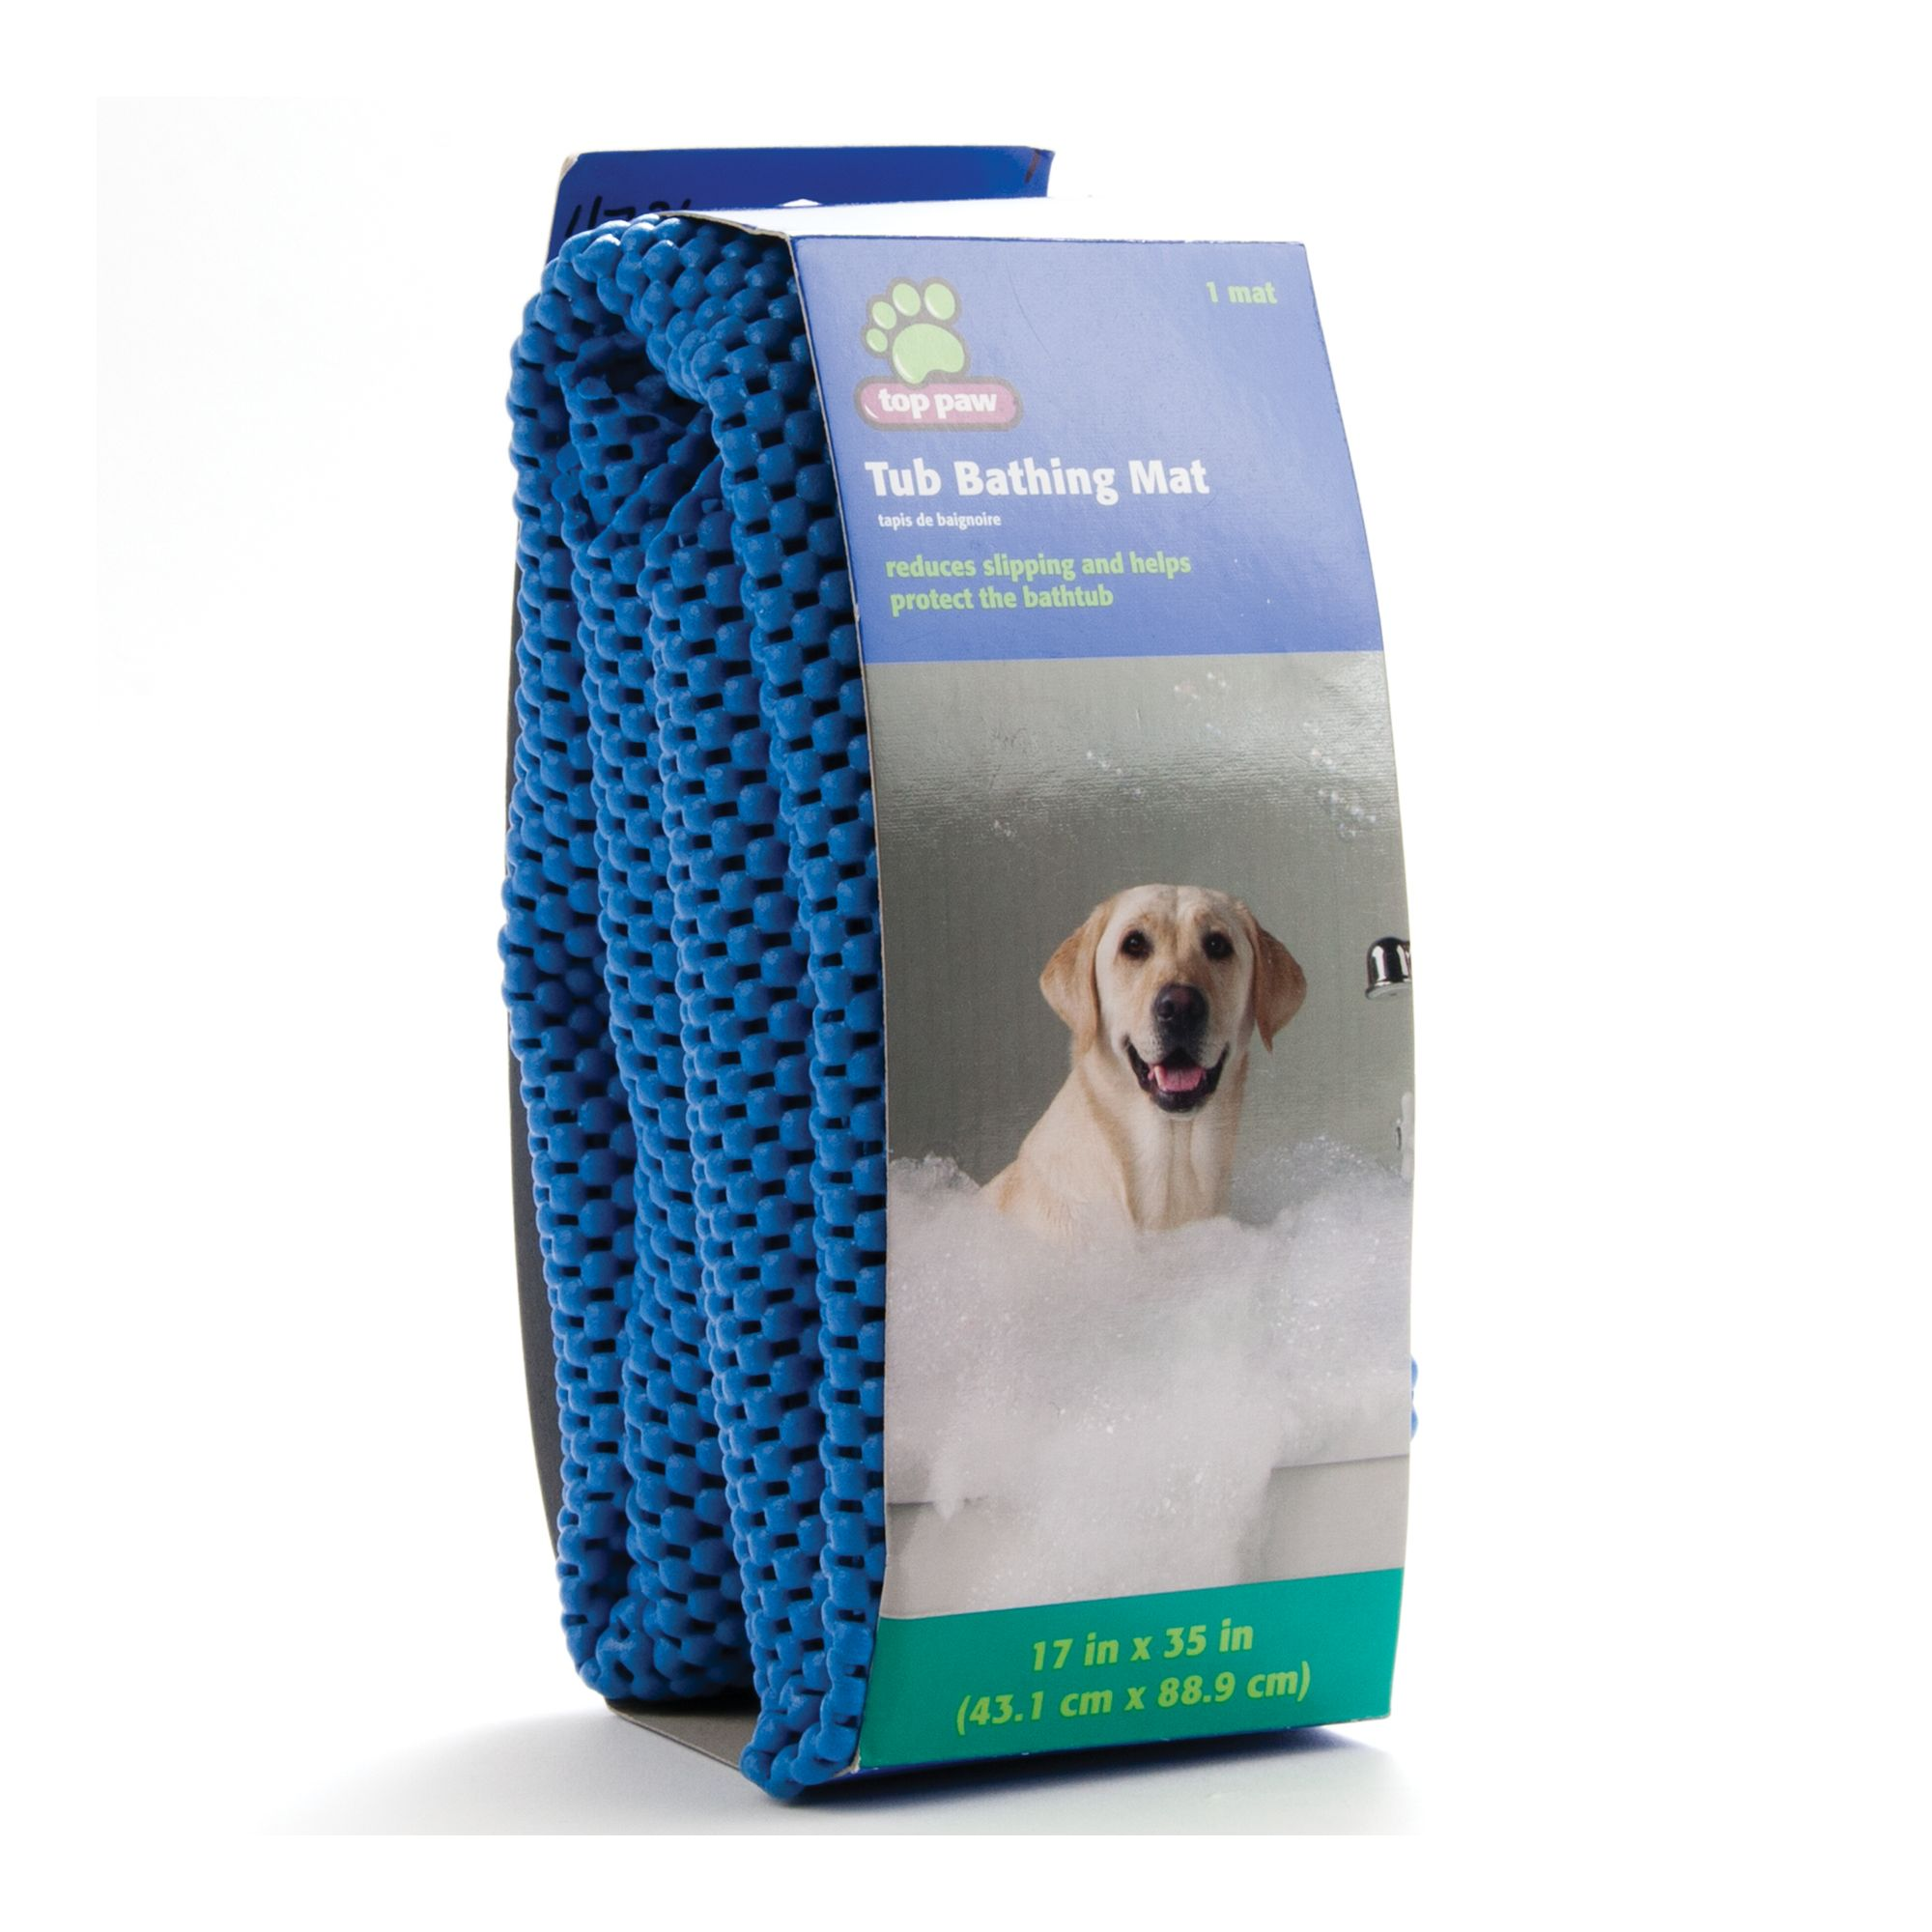 Top Paw Tub Bathing Mat Dog Grooming Dog Grooming Business